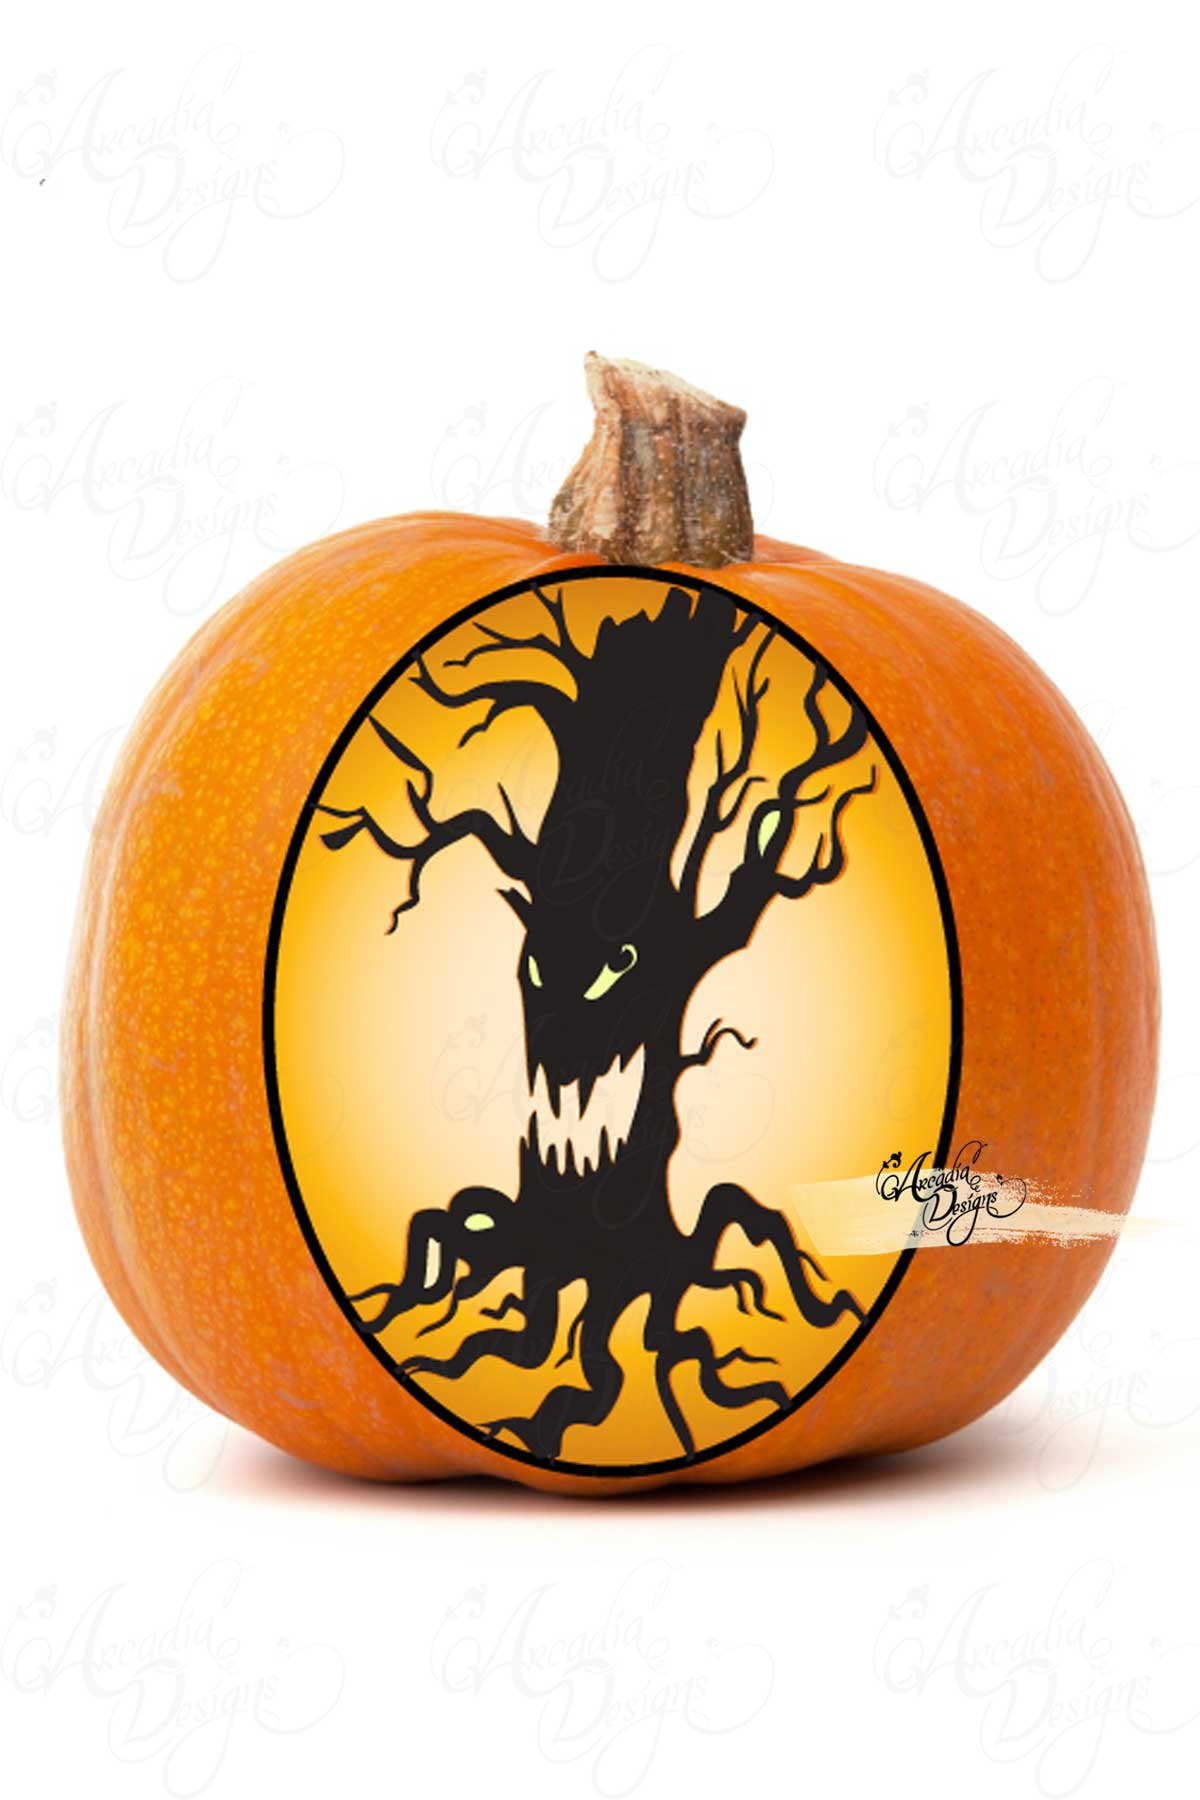 Arcadia Designs Halloween Scary Tree Face Pumpkin Carving stencil